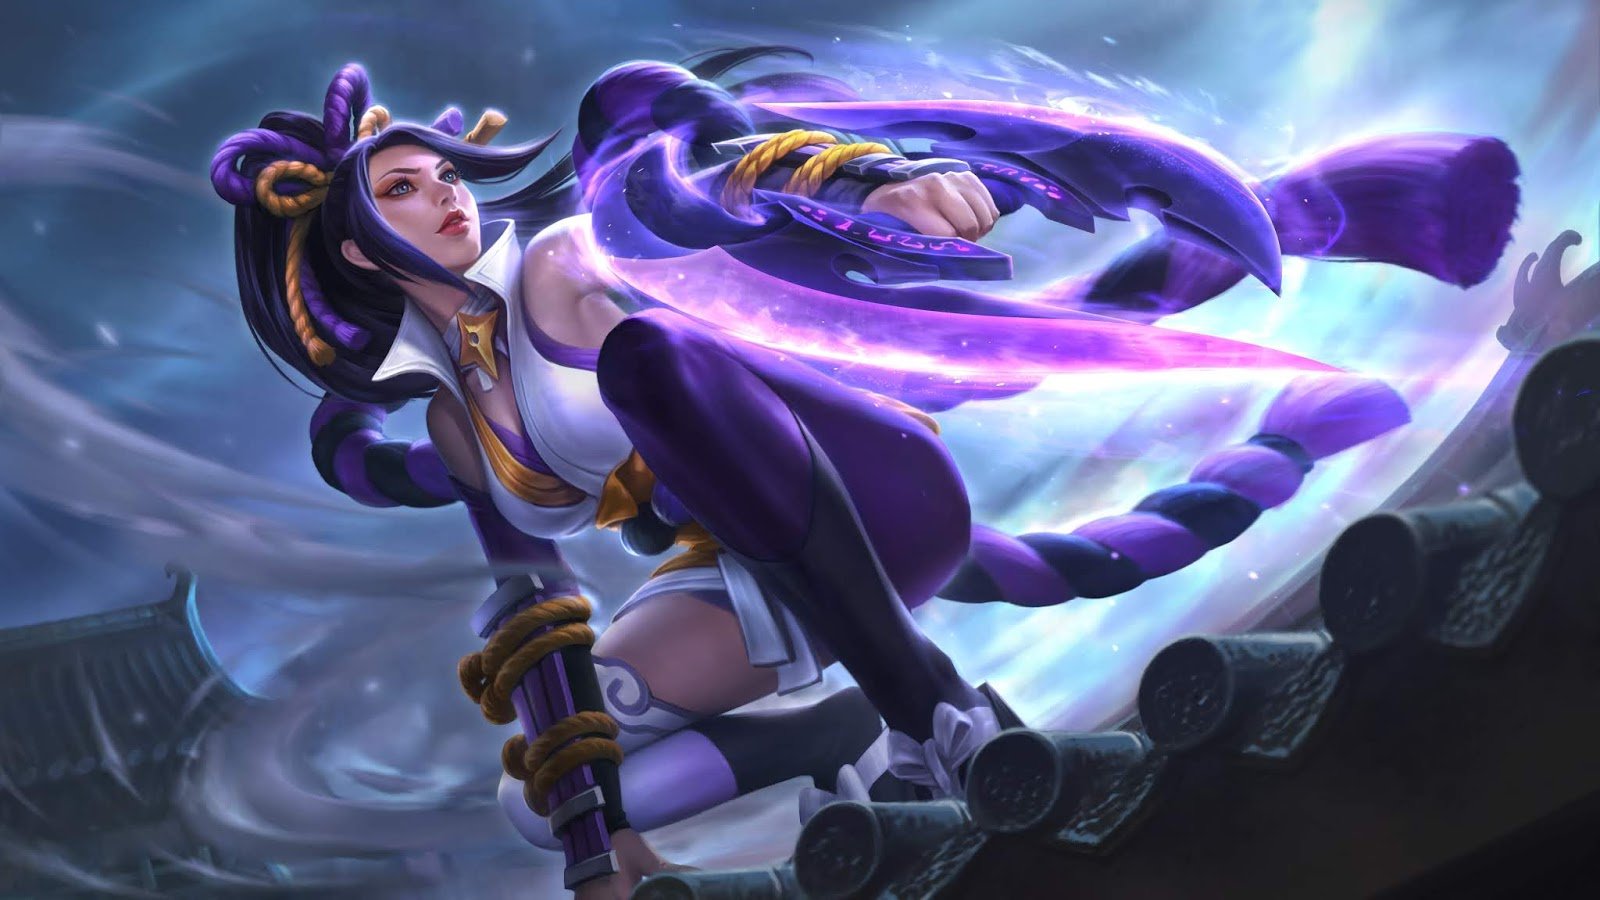 Mobile Legend Wallpaper   Skin Hanabi Mobile Legend Hd Wallpapers 1600x900